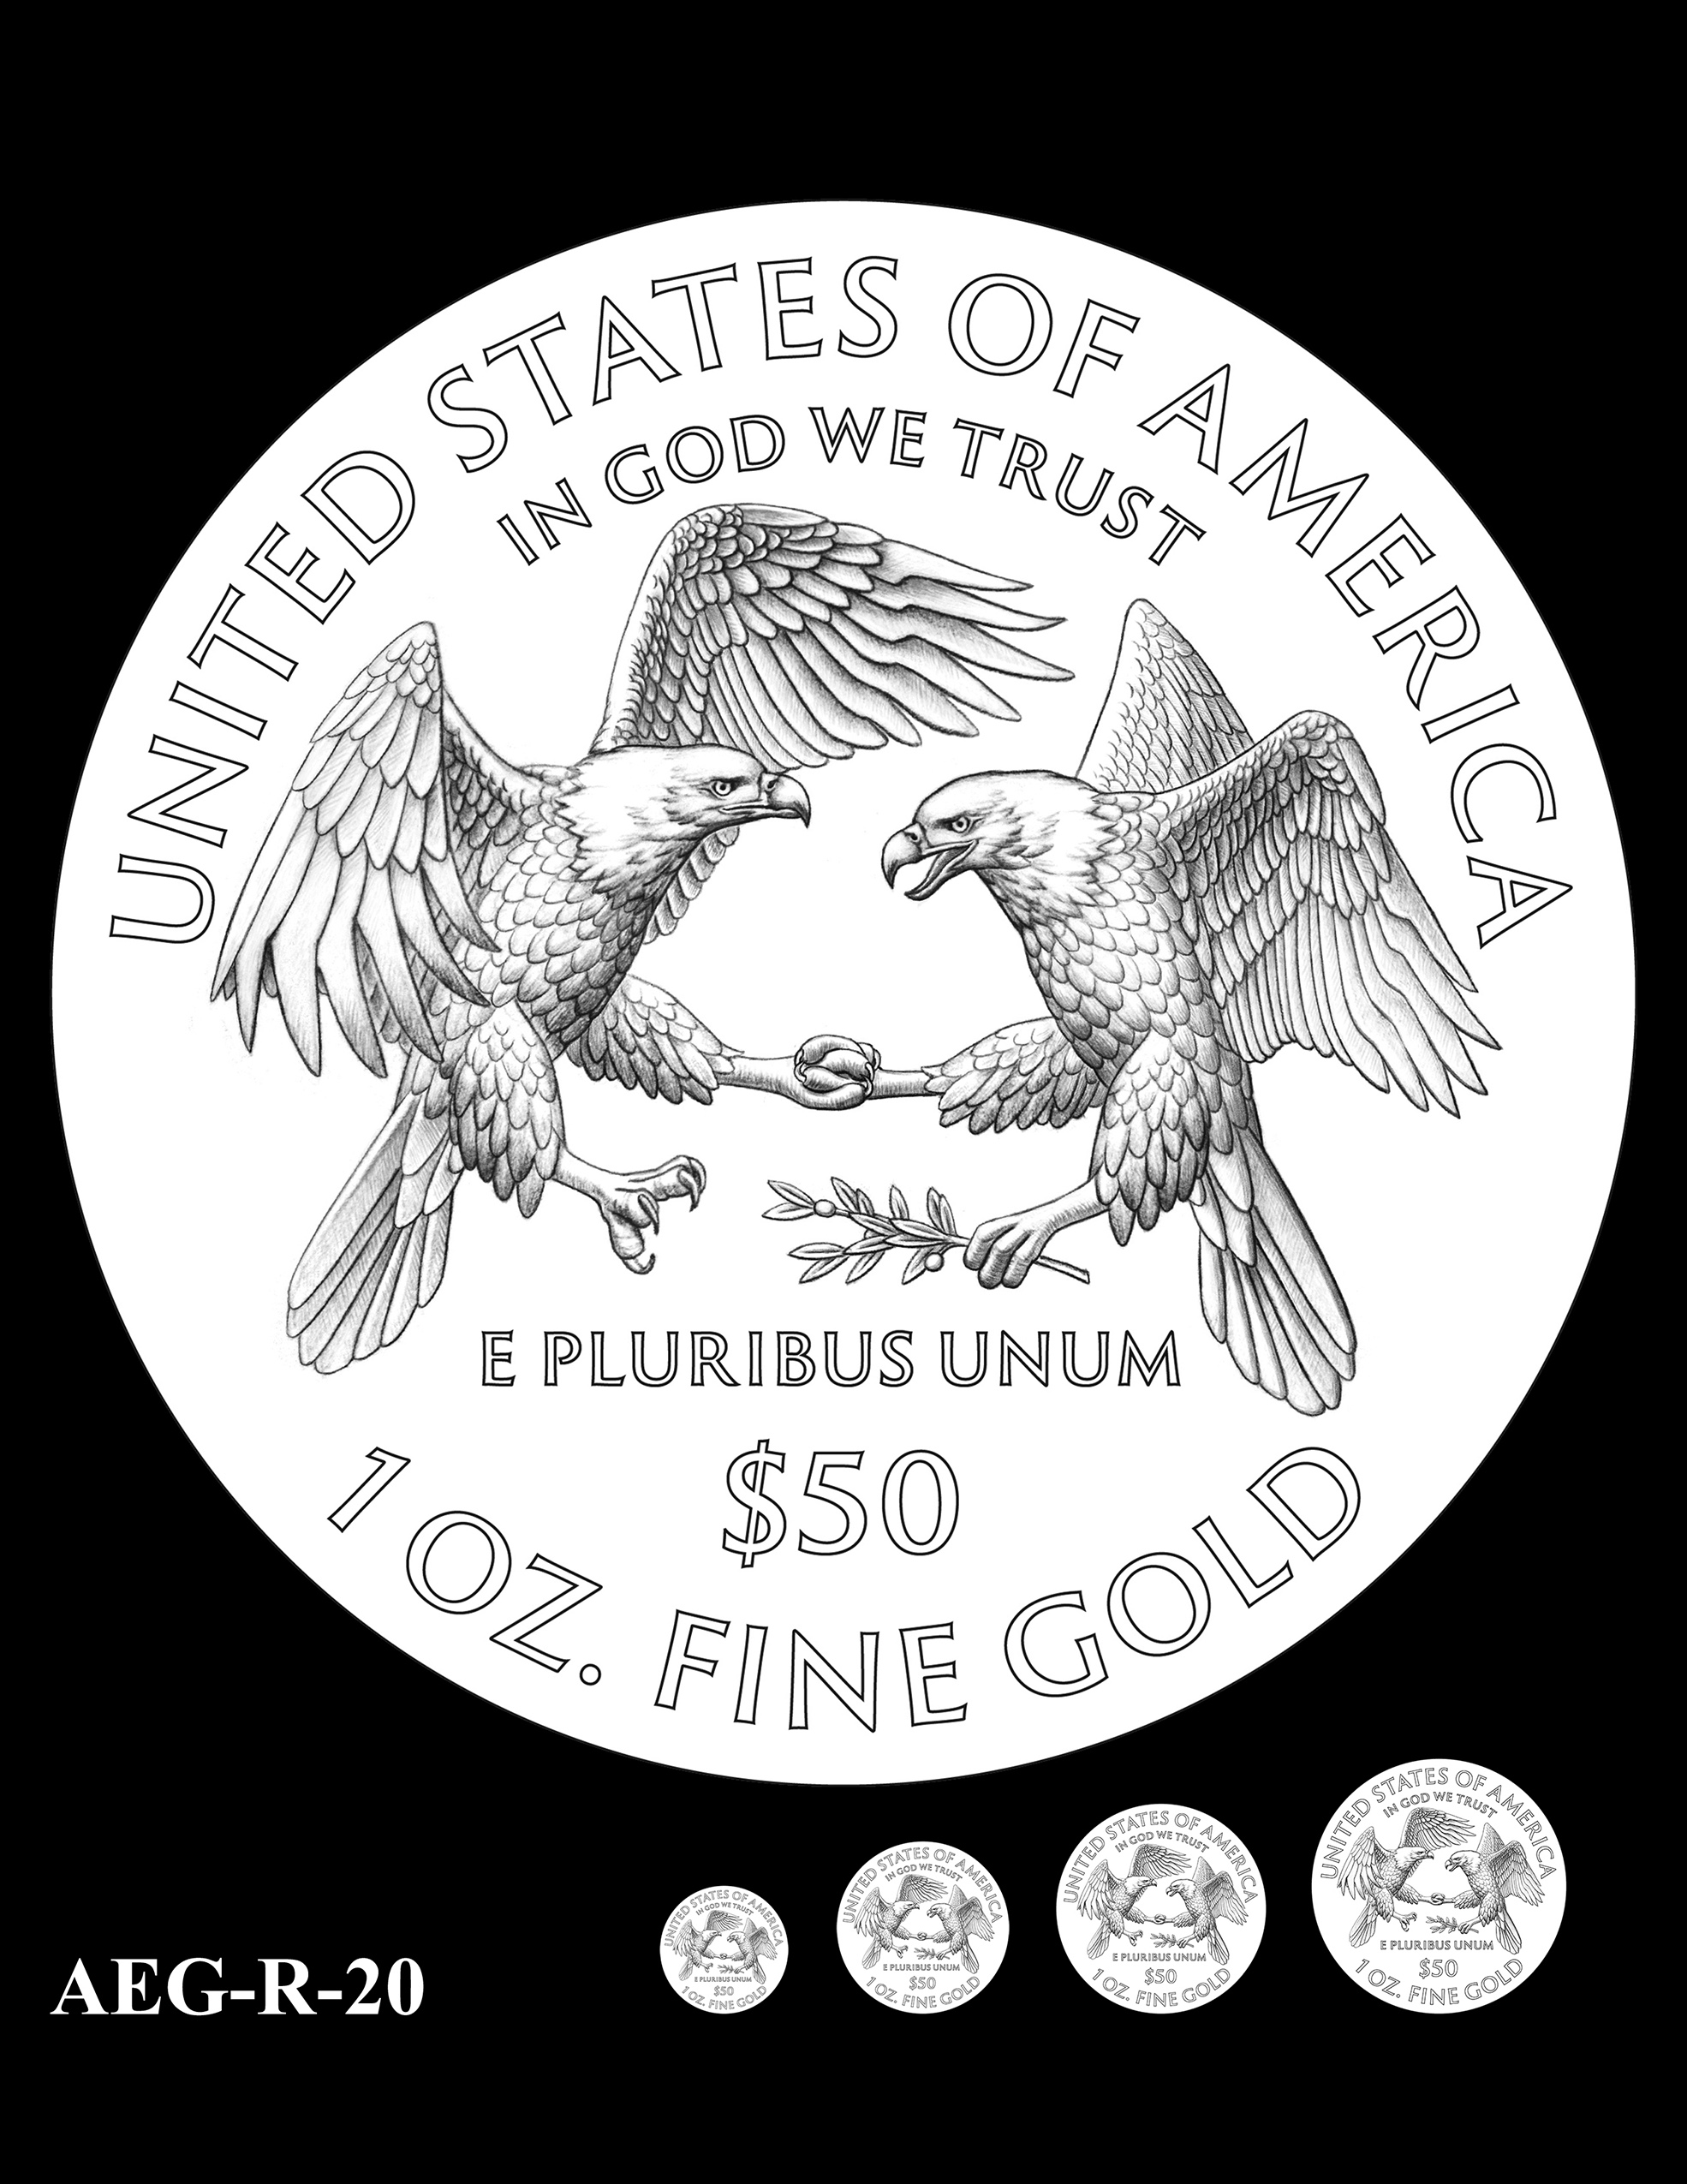 AEG-R-20 -- American Eagle Proof and Bullion Gold Coin - Reverse